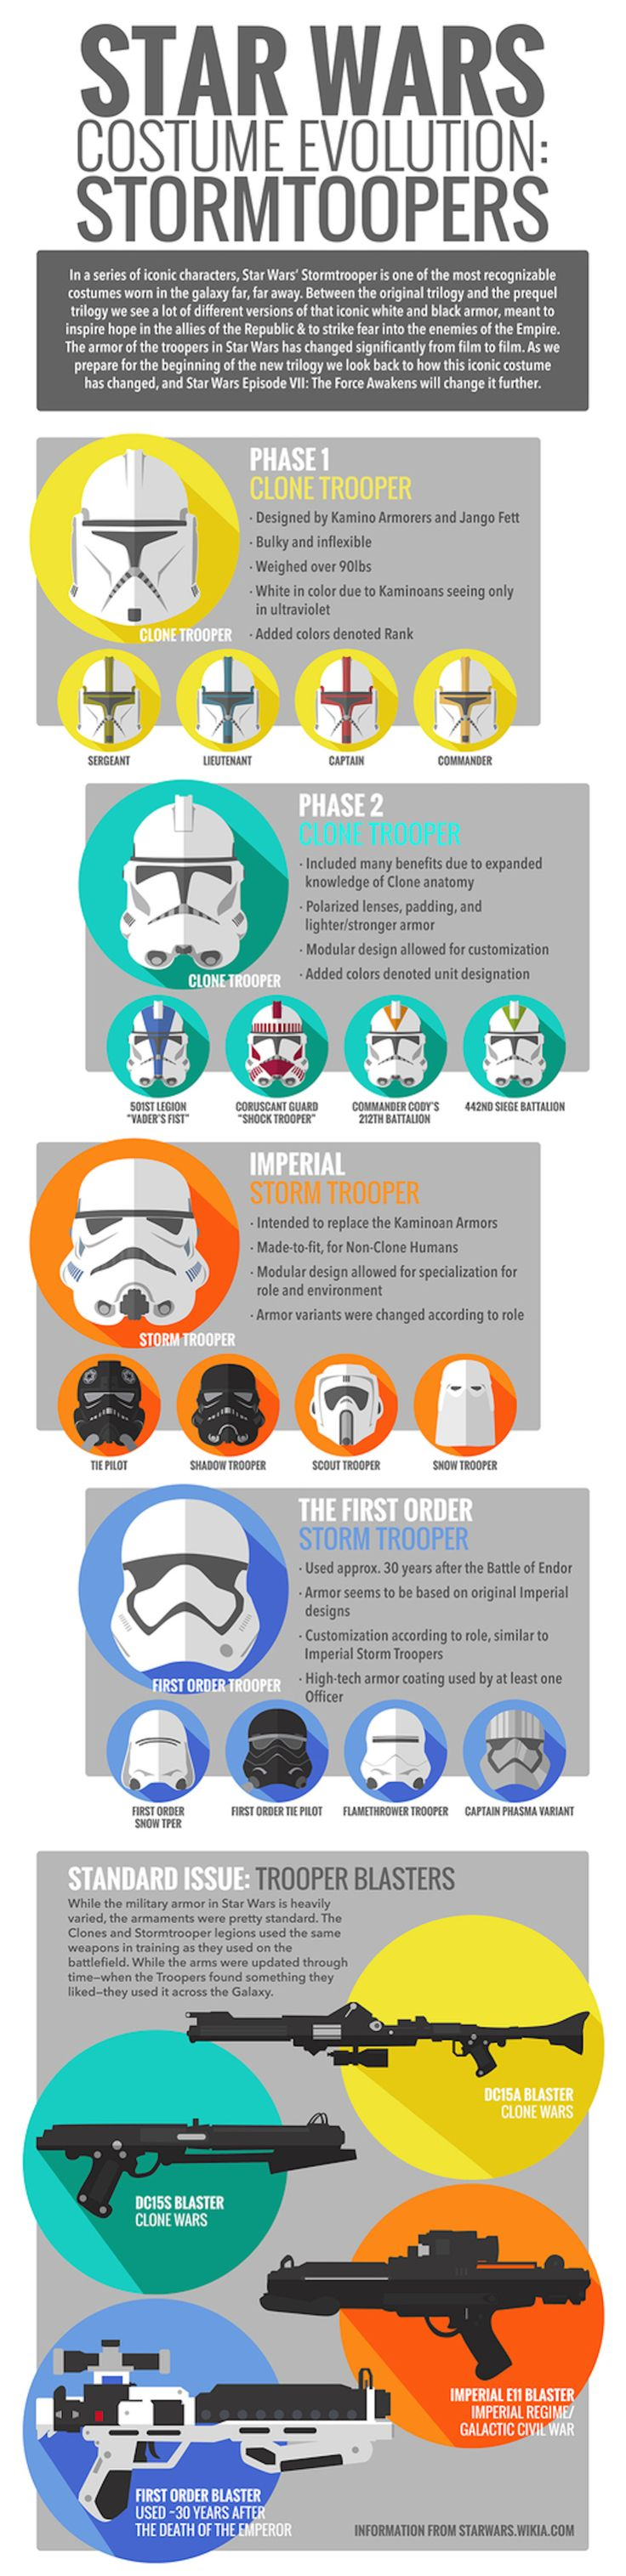 Stormtroopers evolution